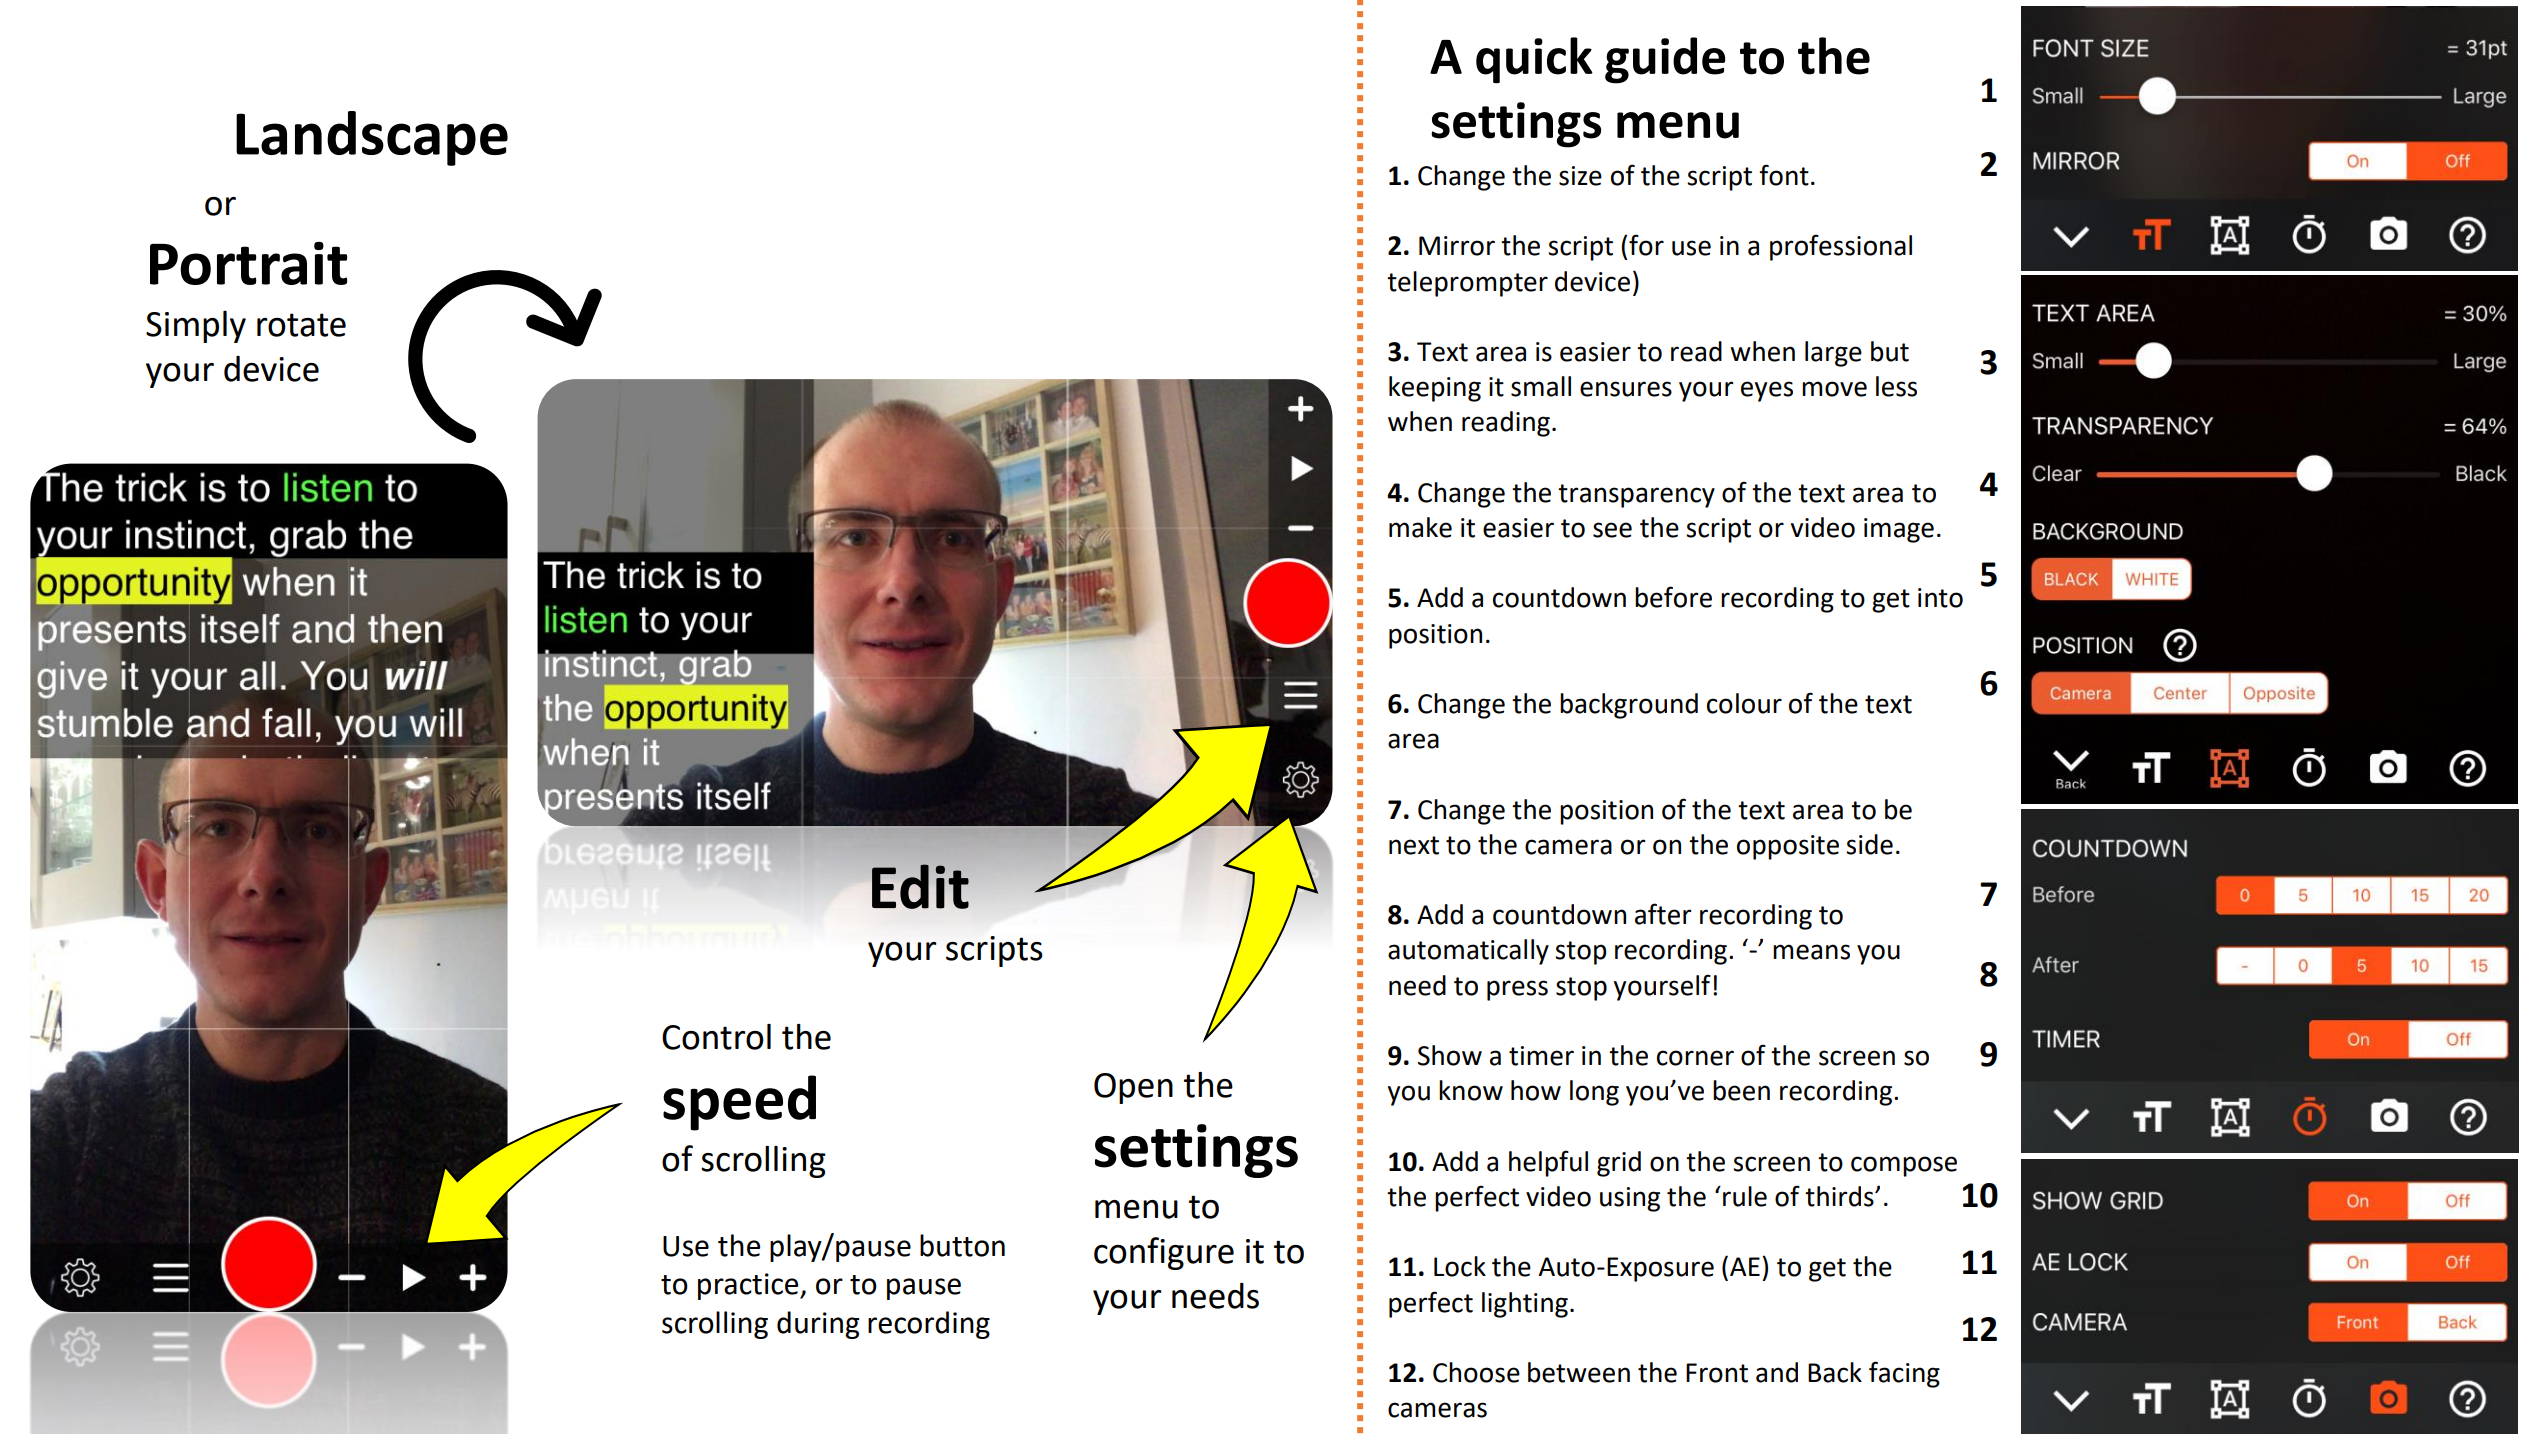 One page guide for using teleprompter for video app